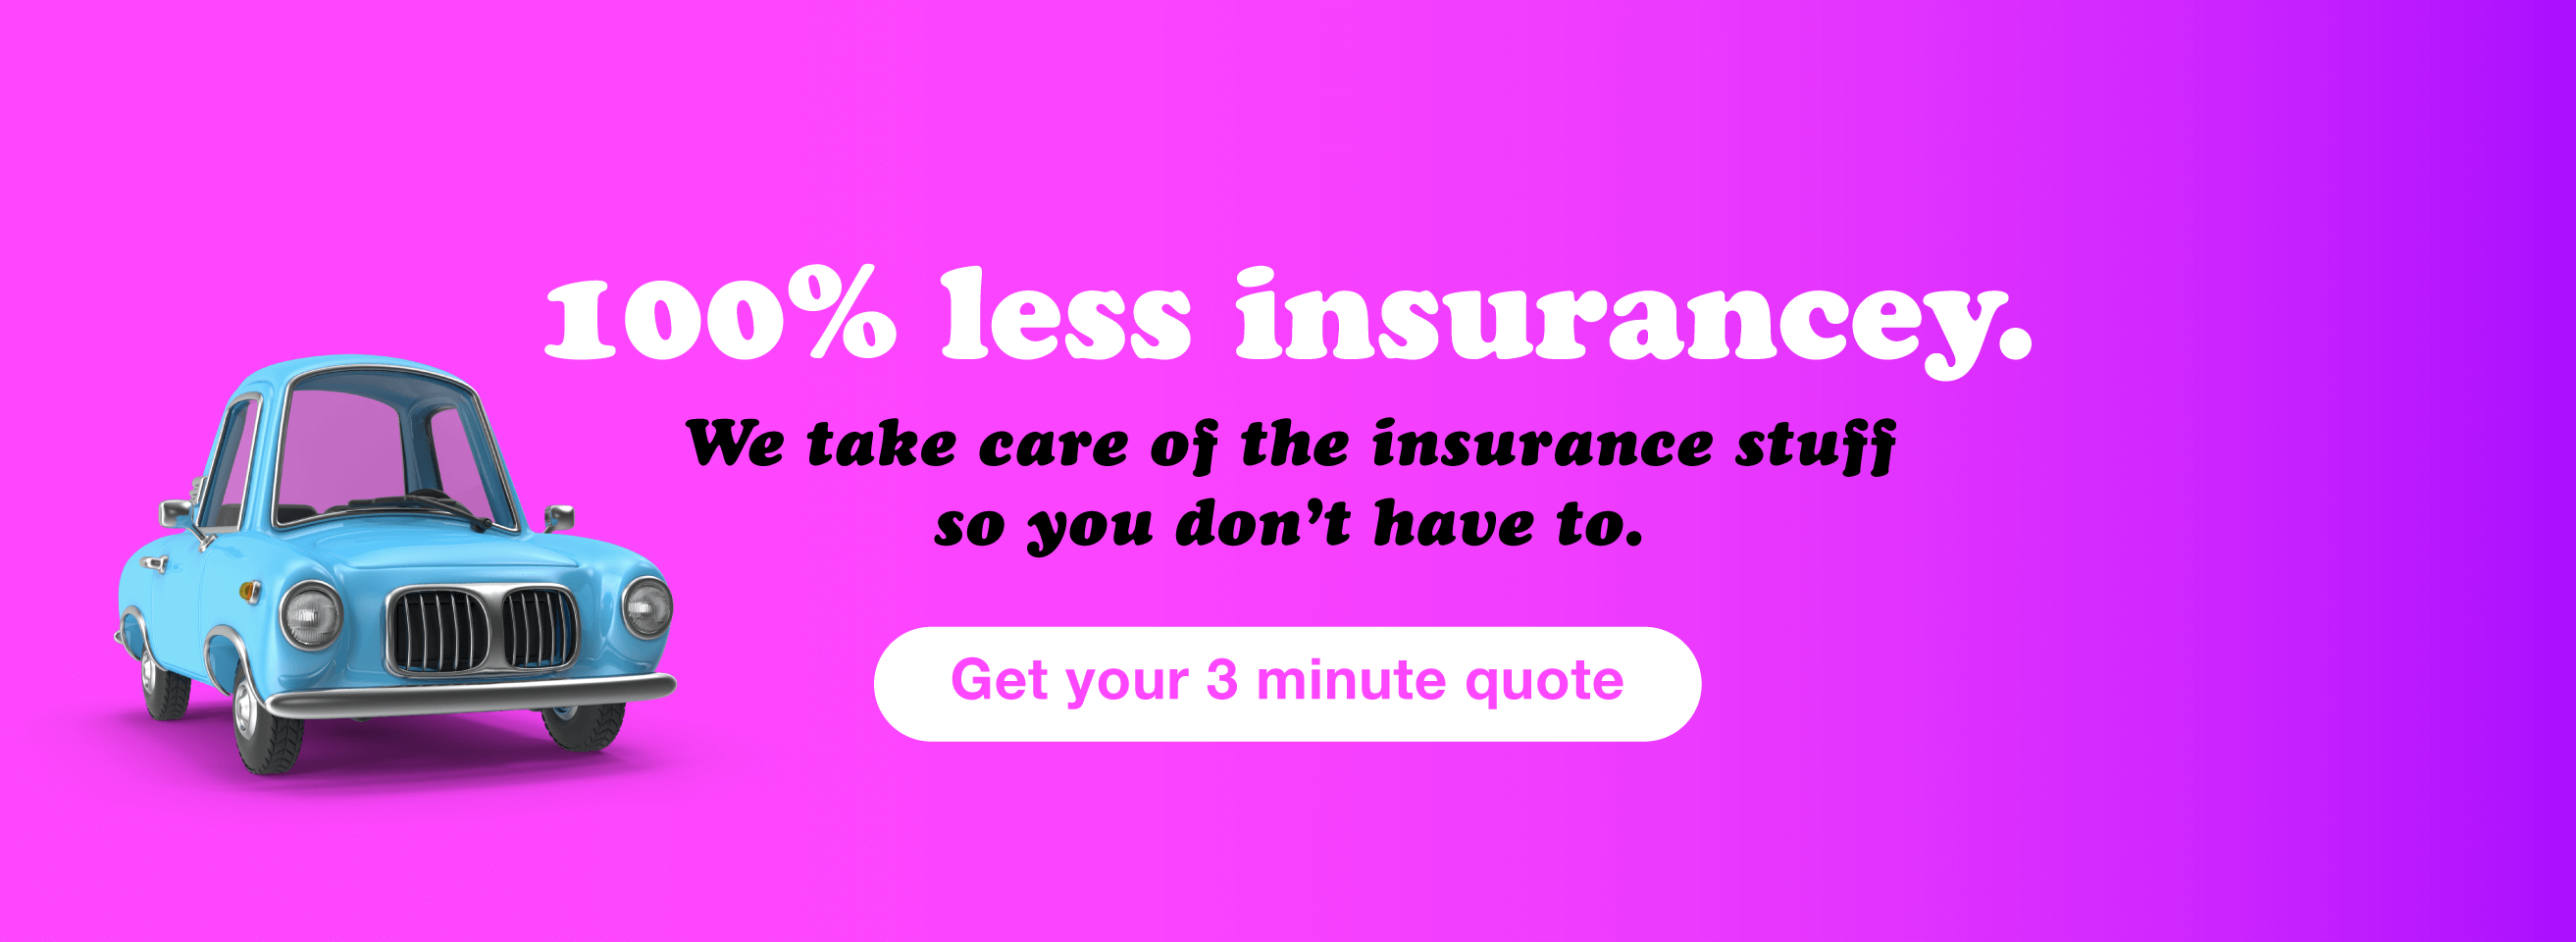 100% less insurancey: We take care of the insurance stuff so you don't have to. Get your 3 minute quote